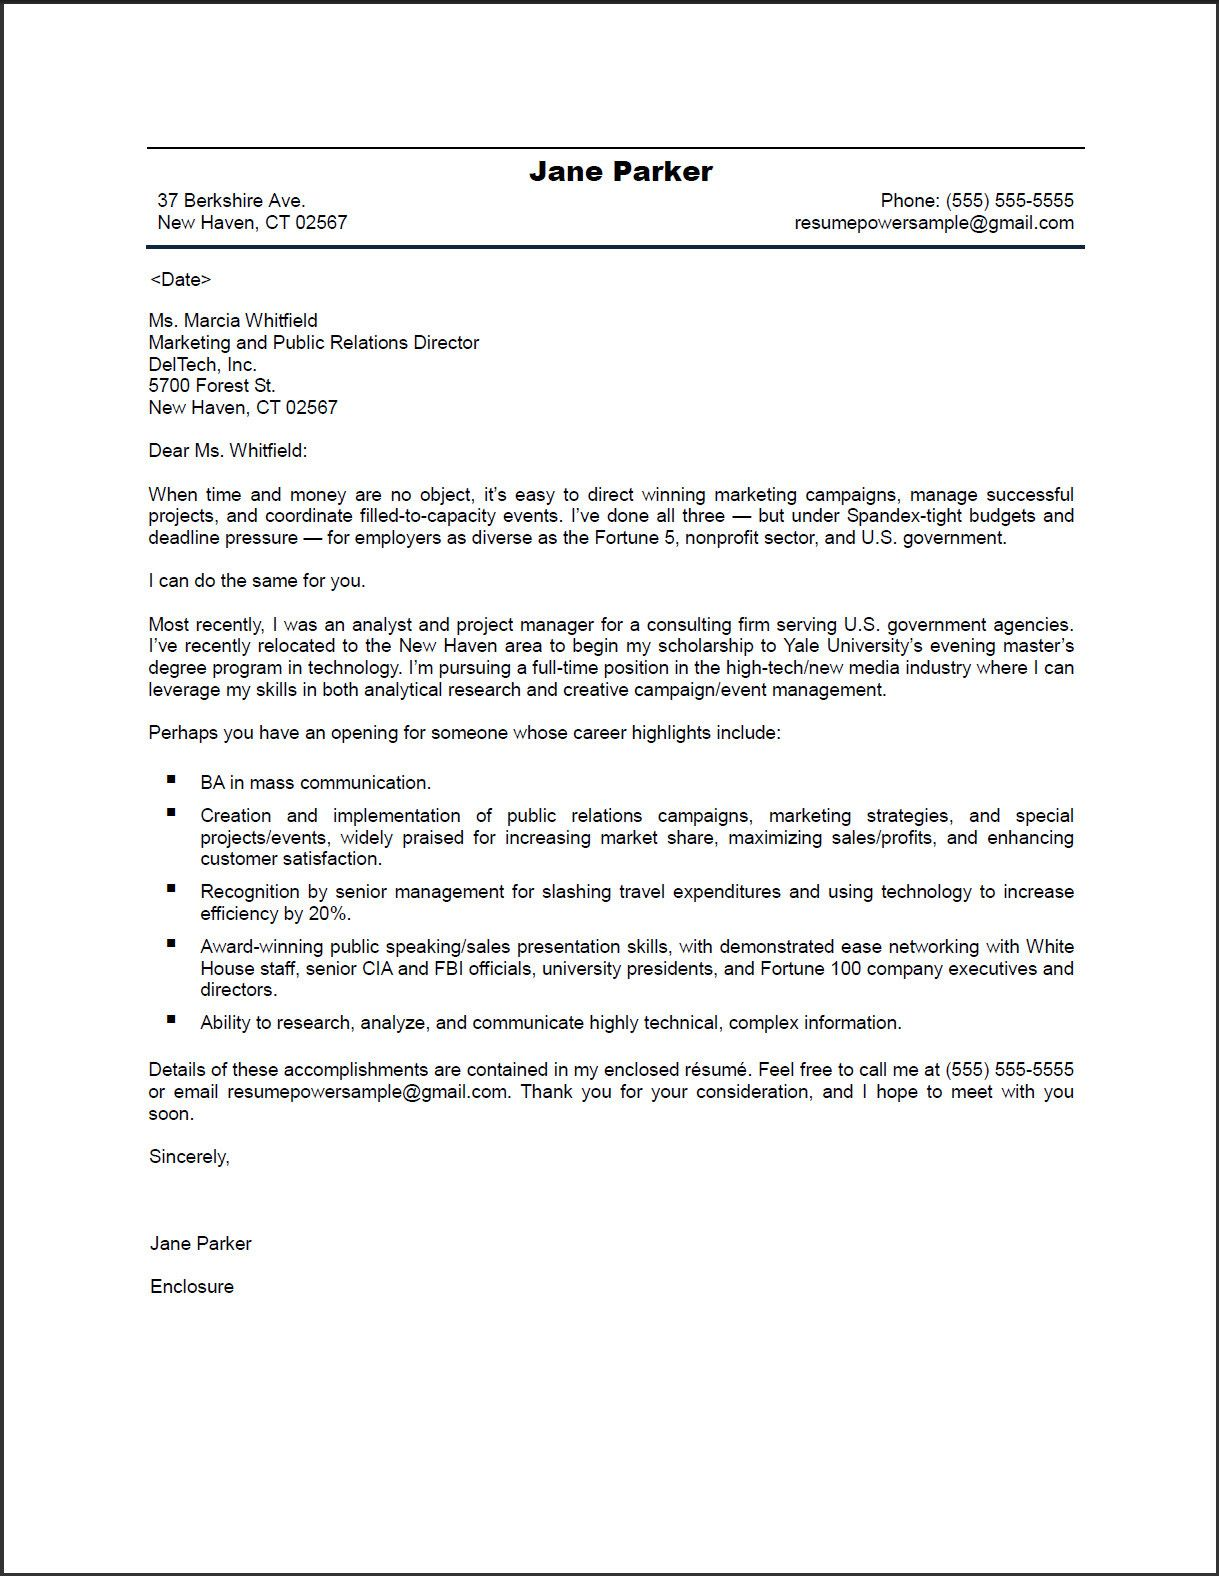 resume cover letter samples exolgbabogadosco - Example Of Resume Cover Letter For Job